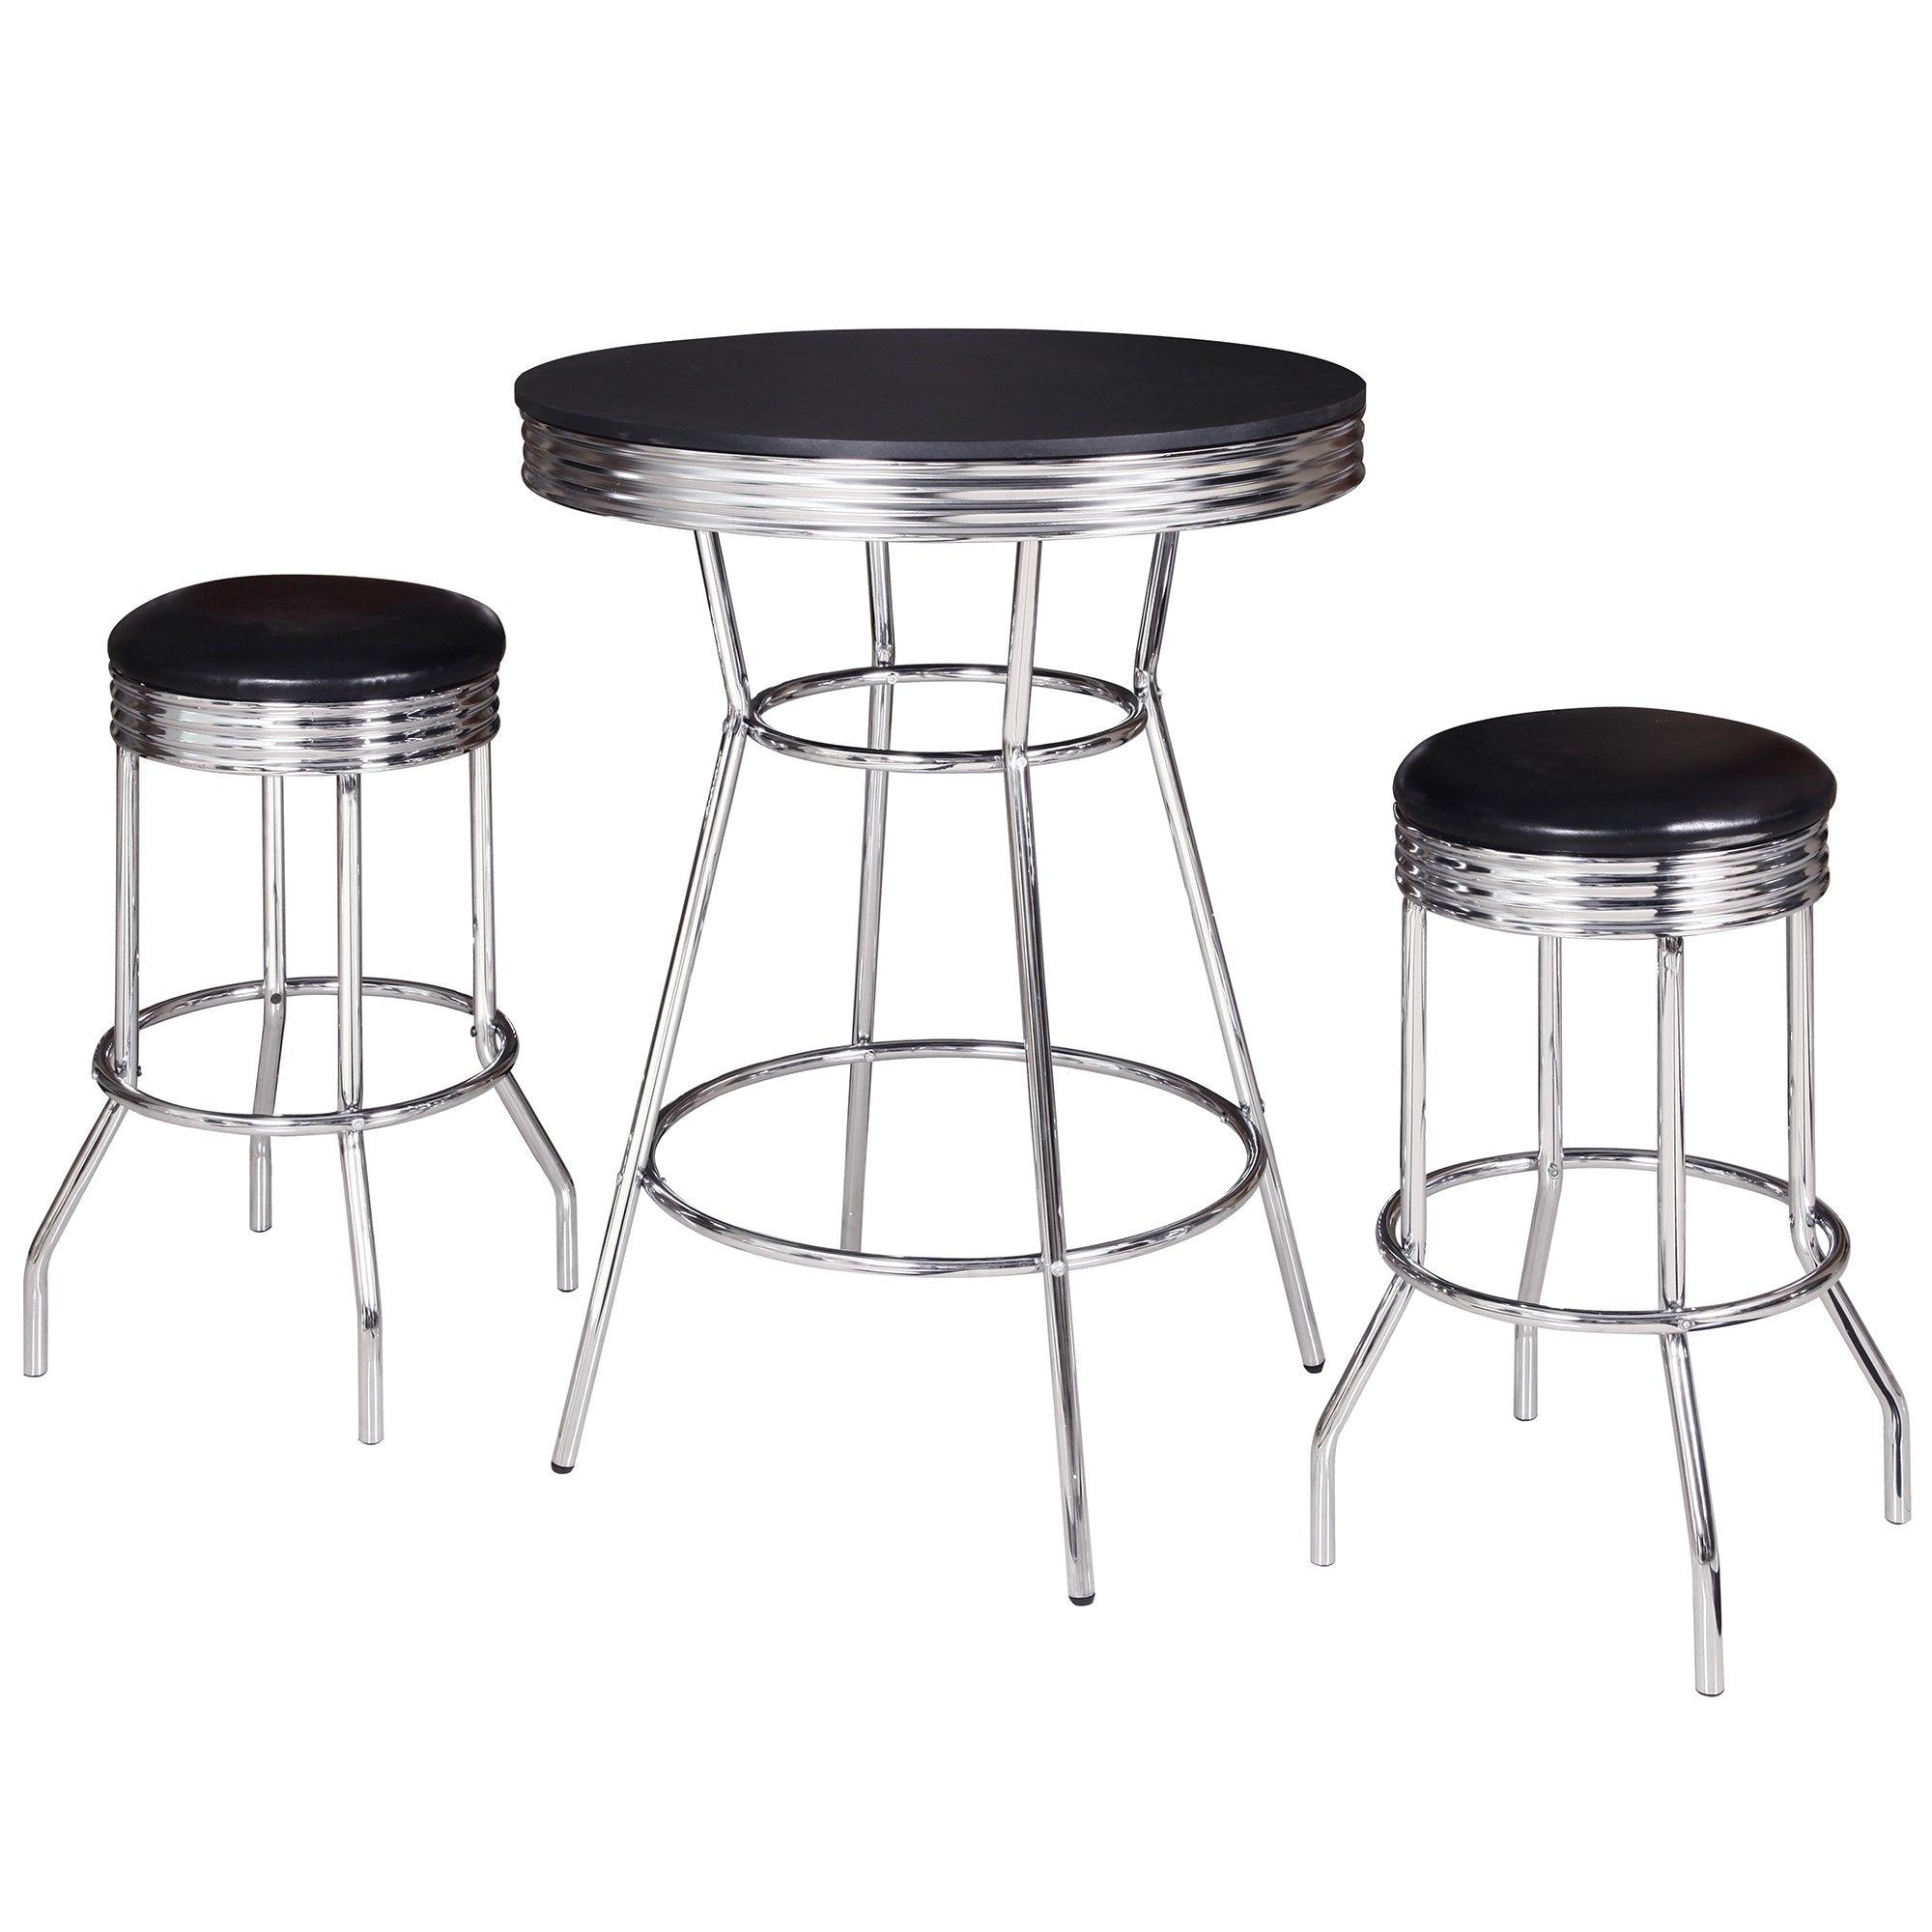 Hathaway Reminton Chrome and Black 3 Piece Pub Table Set - Gaming Blaze